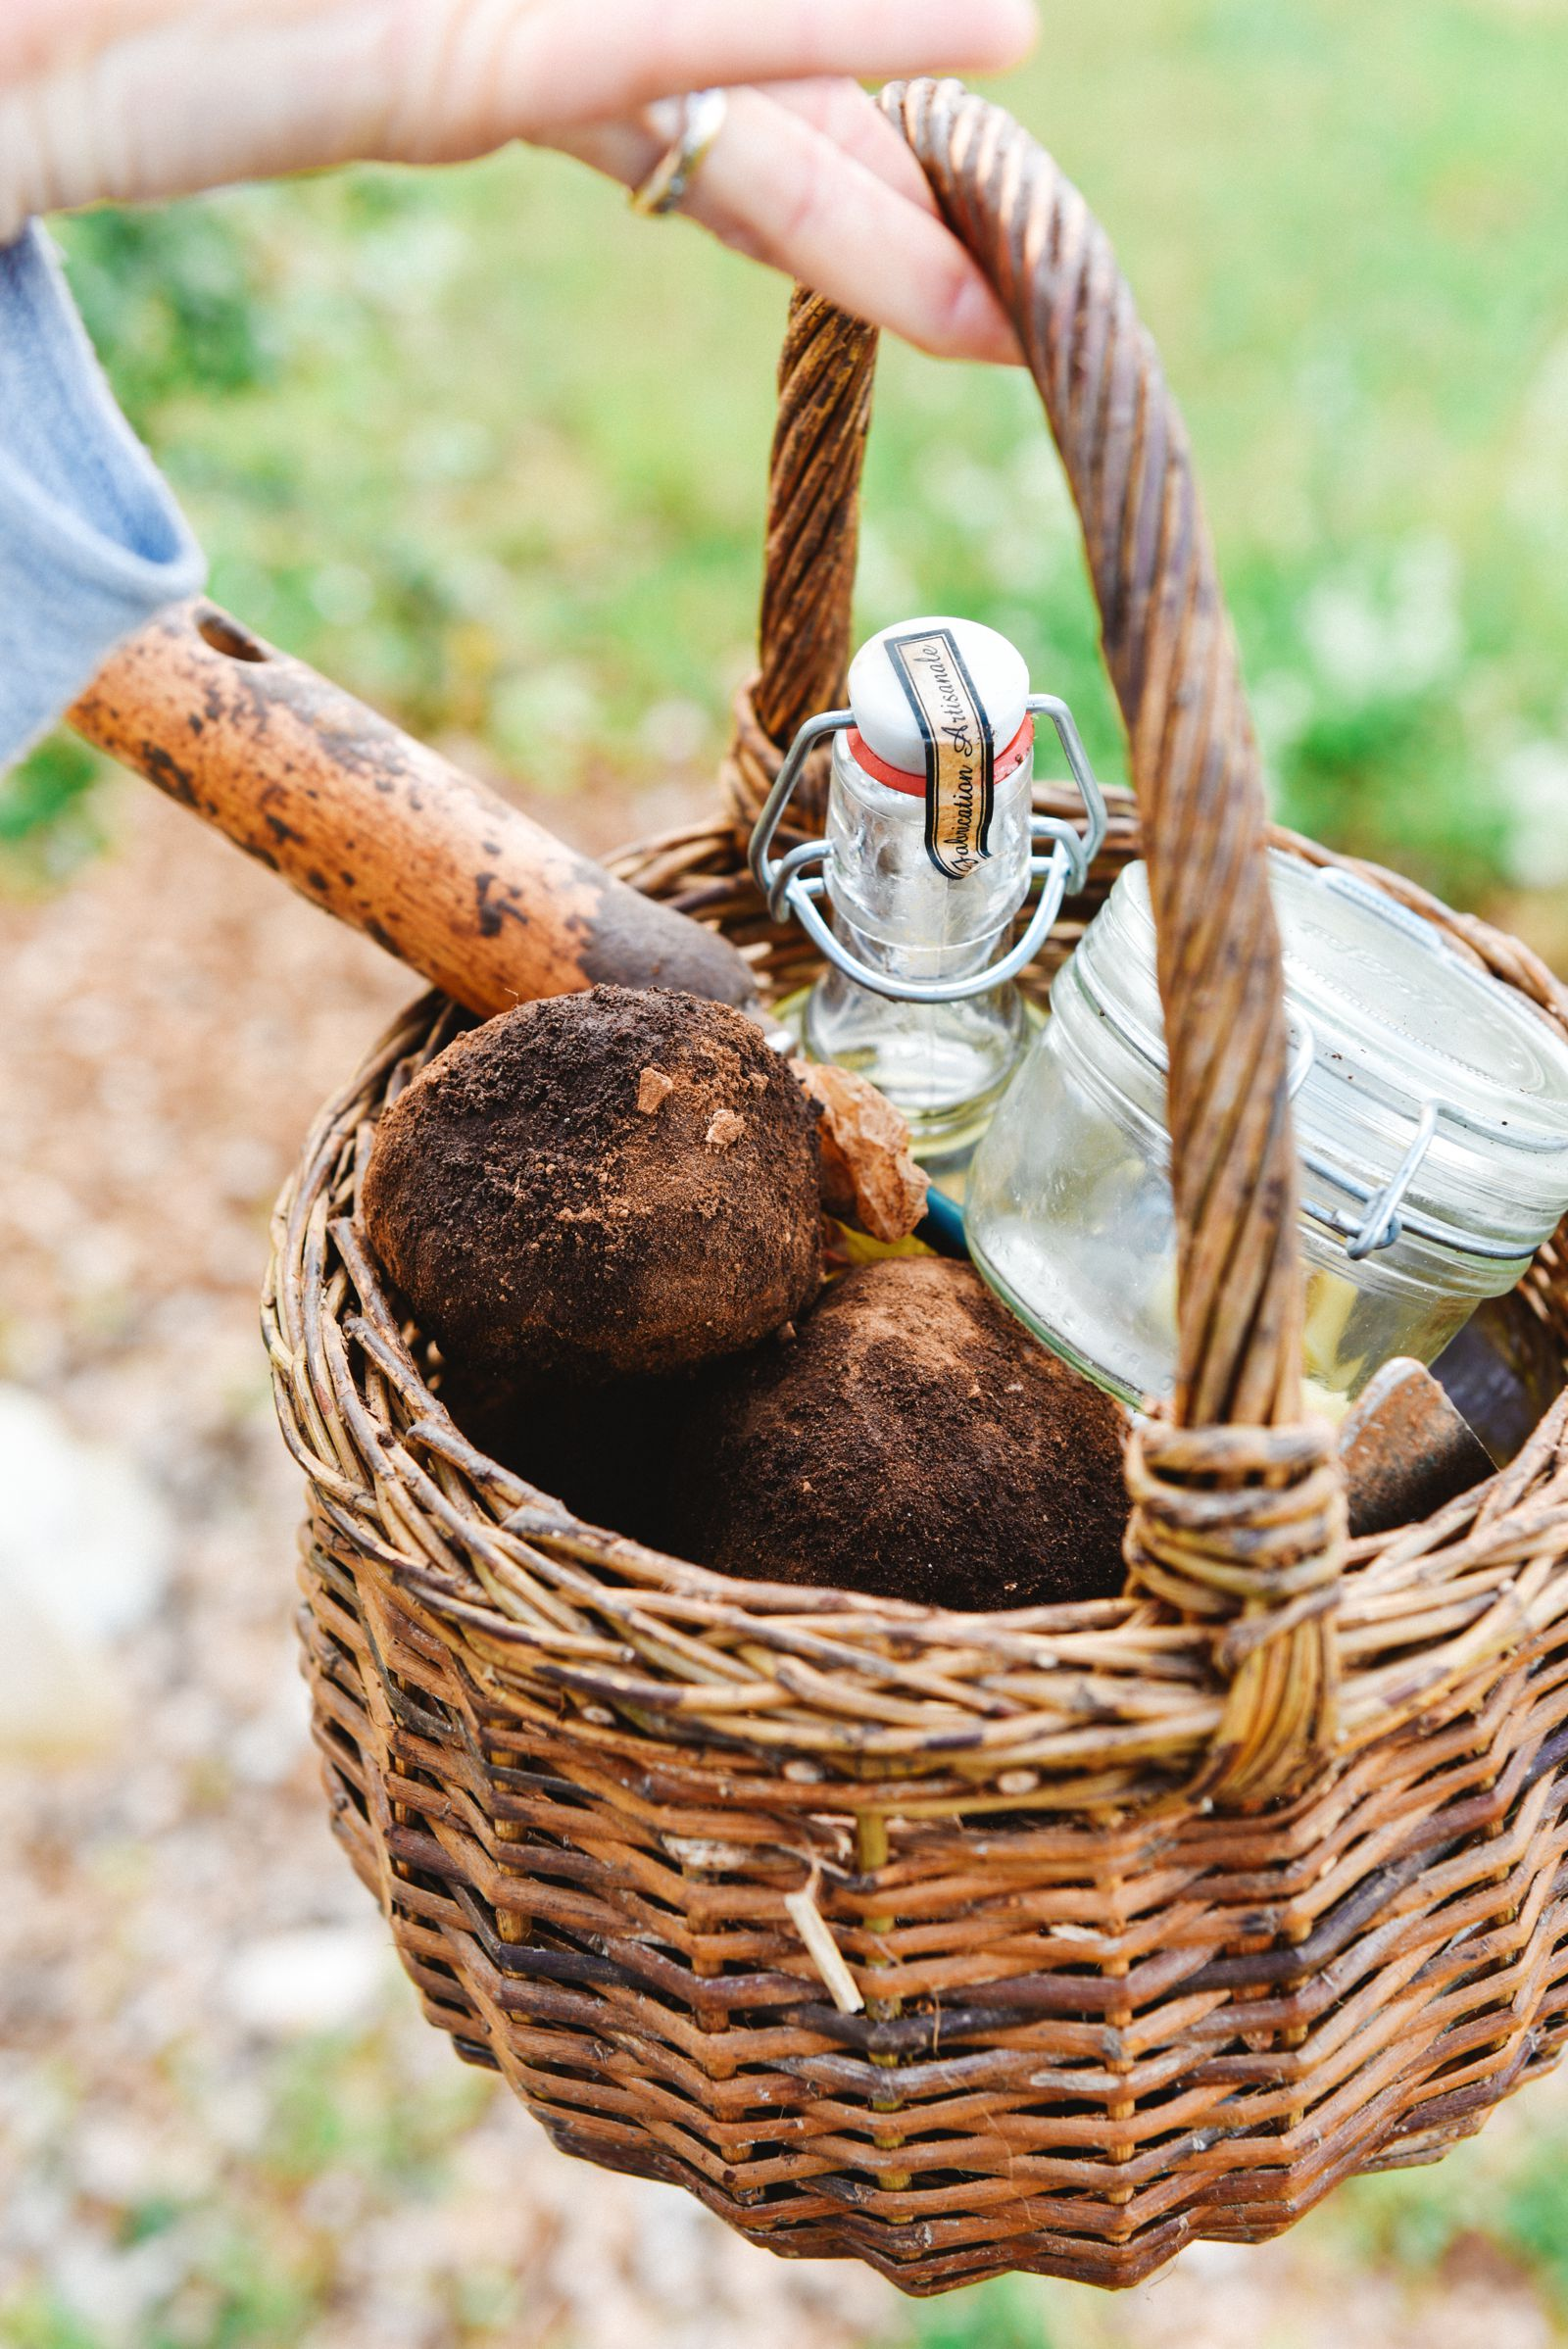 Truffle-Hunting, Chateau-Living And Wine-Tasting In the French Dordogne Valley (9)